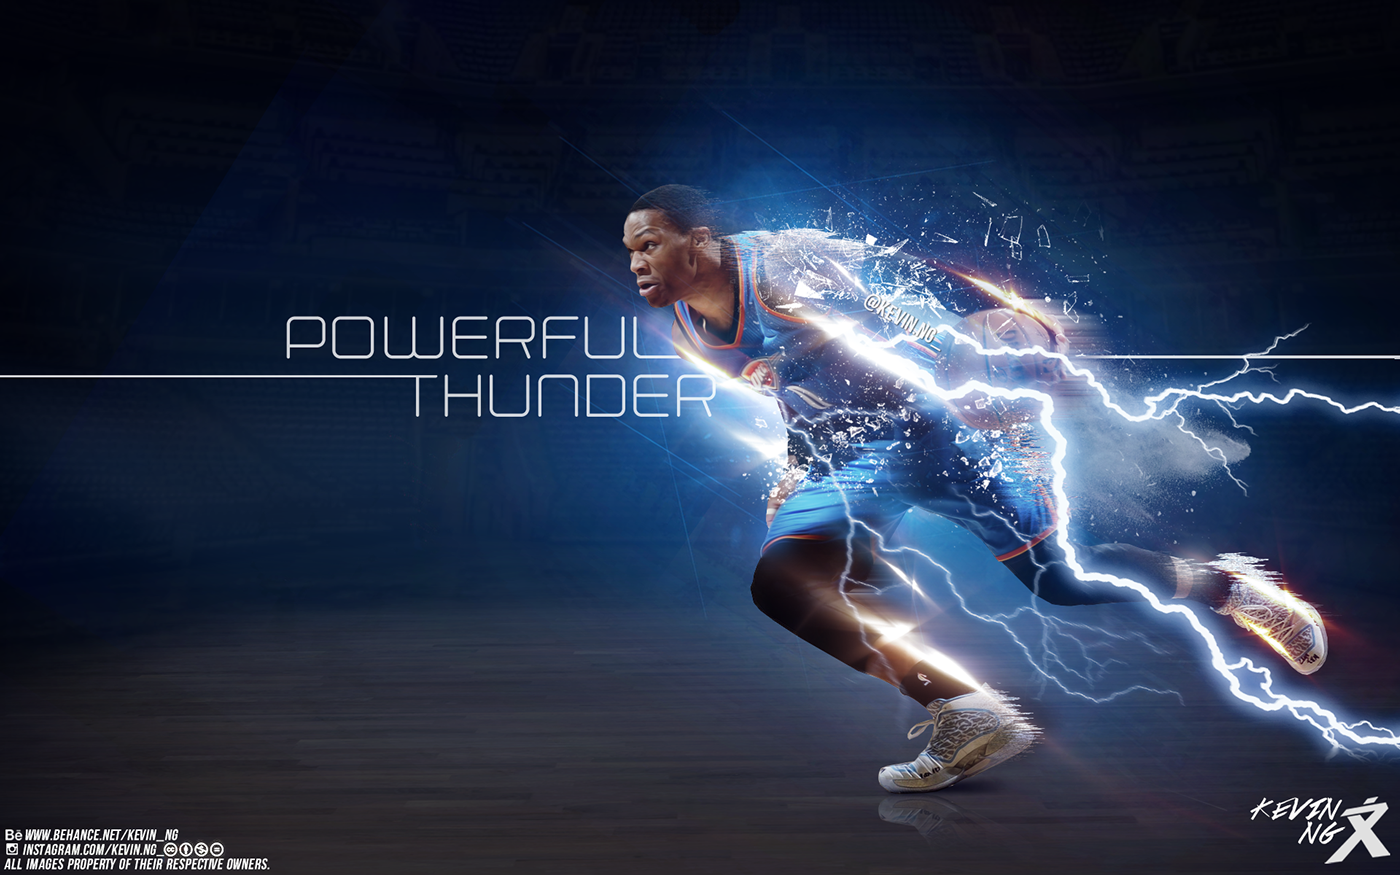 Russell Westbrook 'Powerful Thunder' Wallpaper on Behance